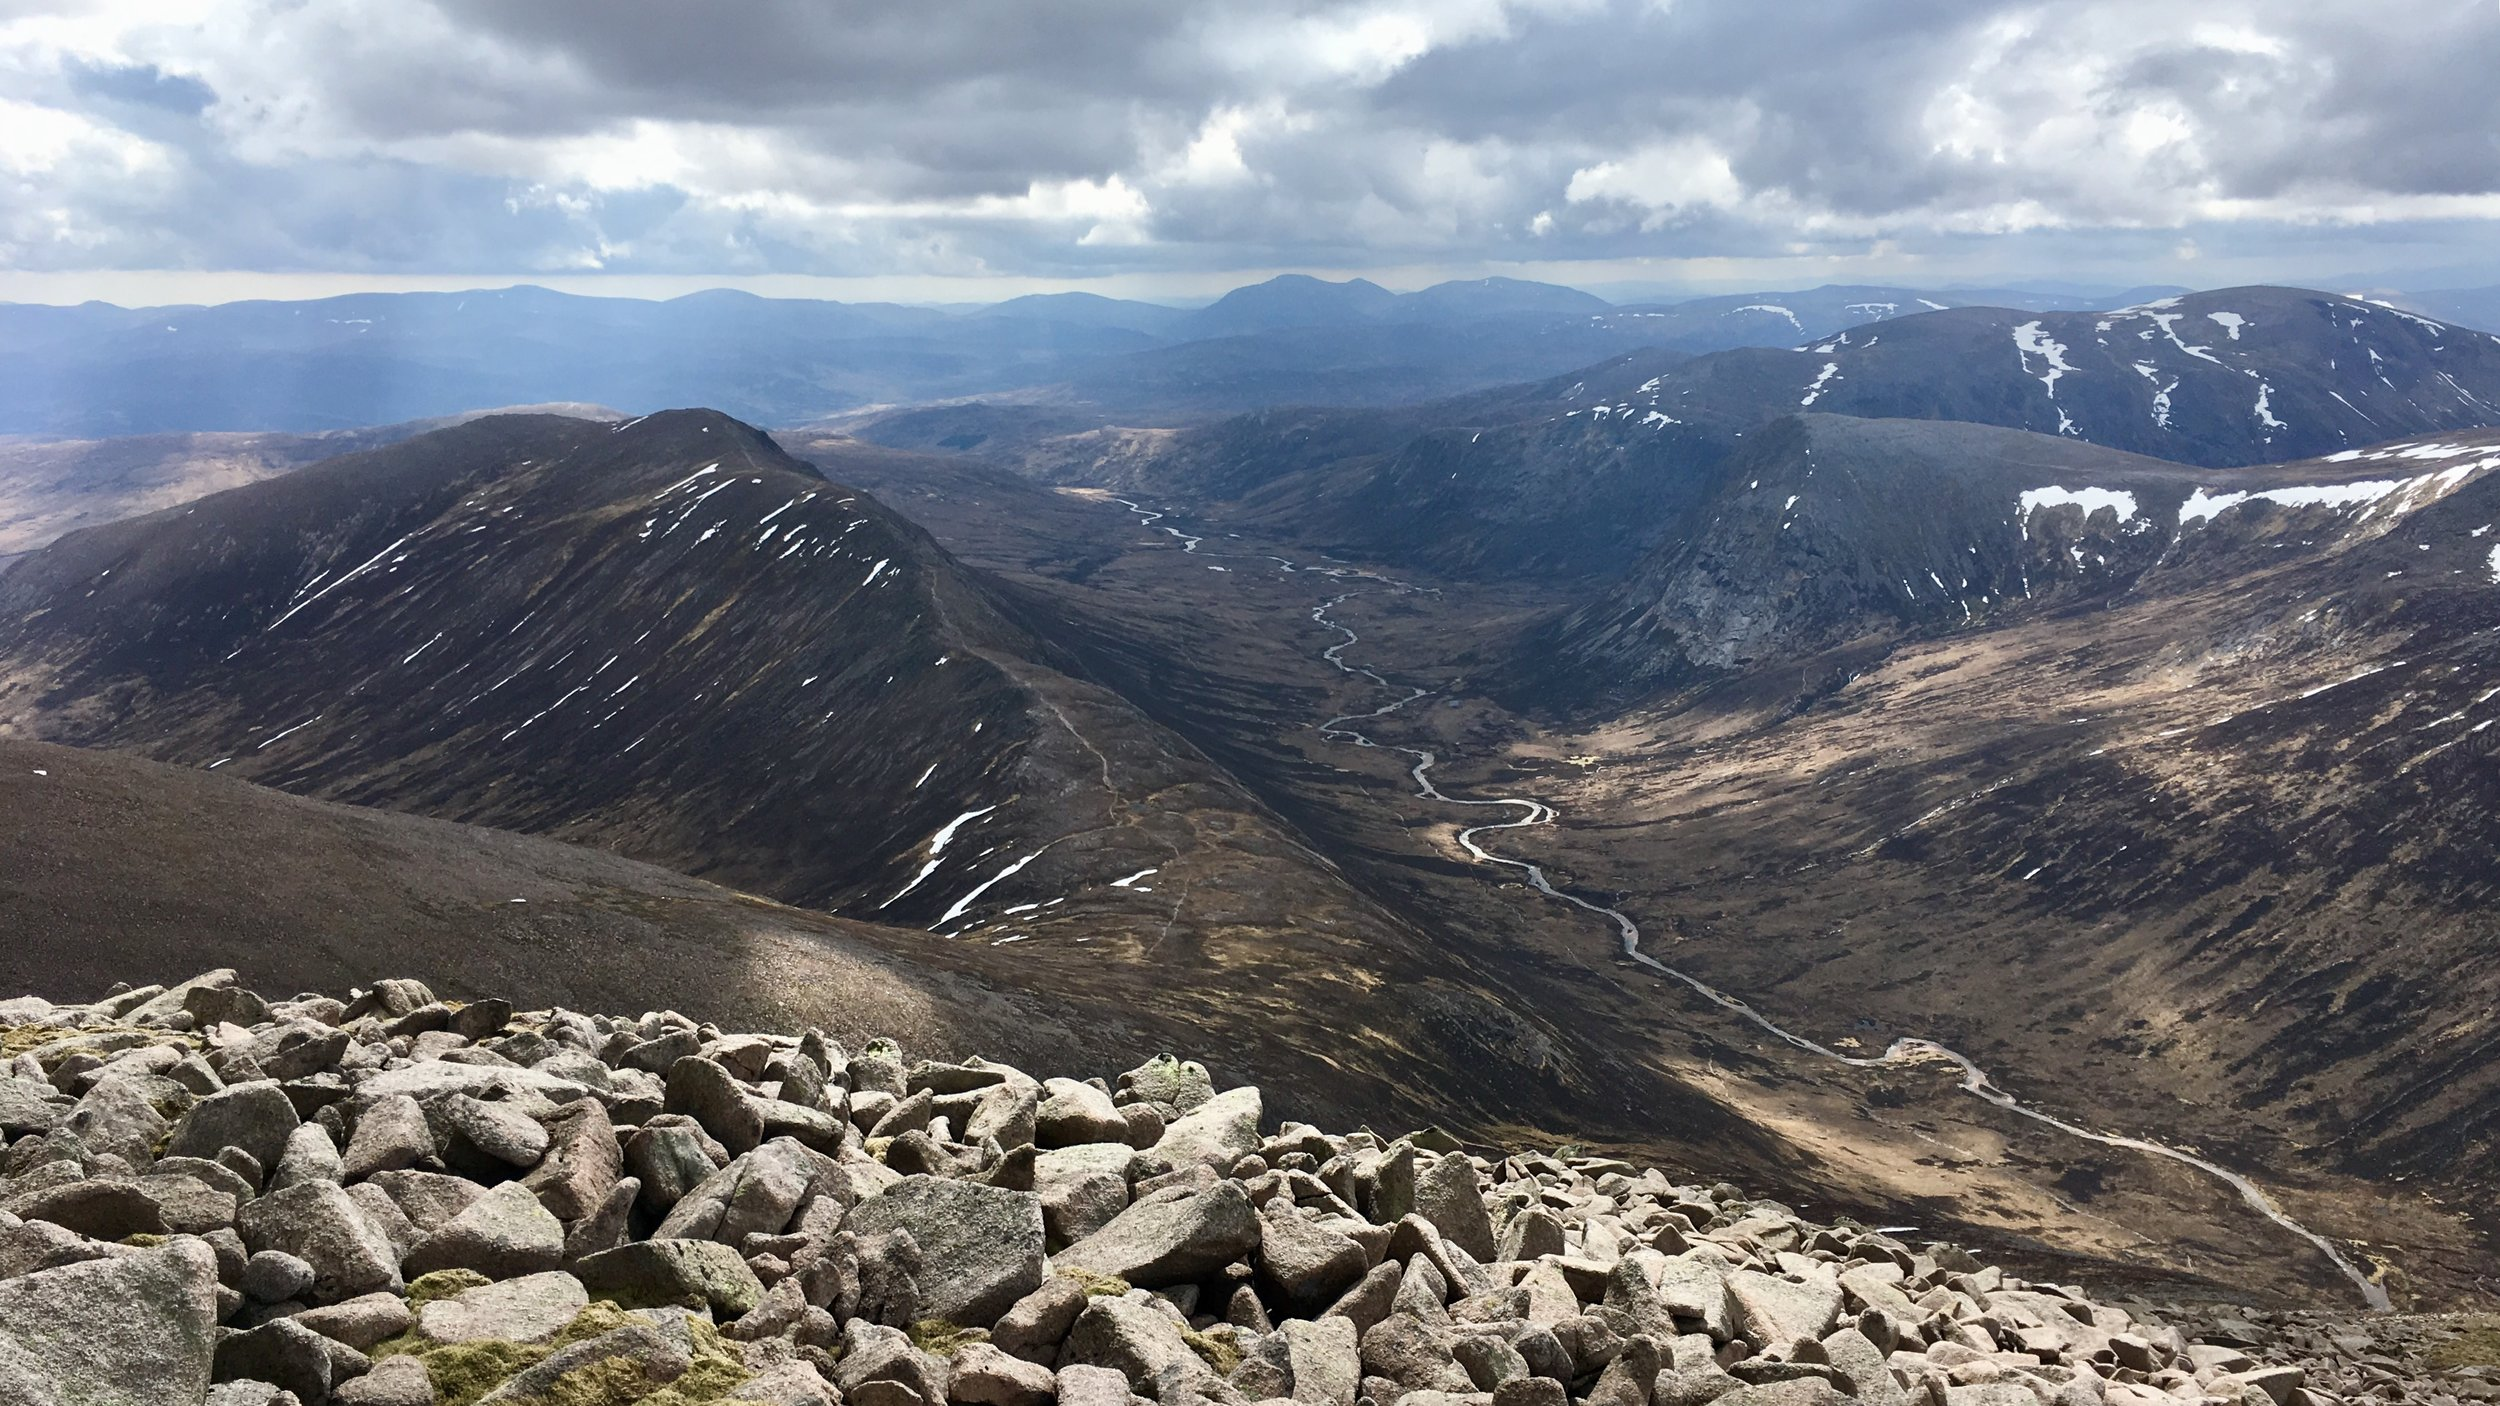 Views from Ben Macdui down in the Lairig Ghru